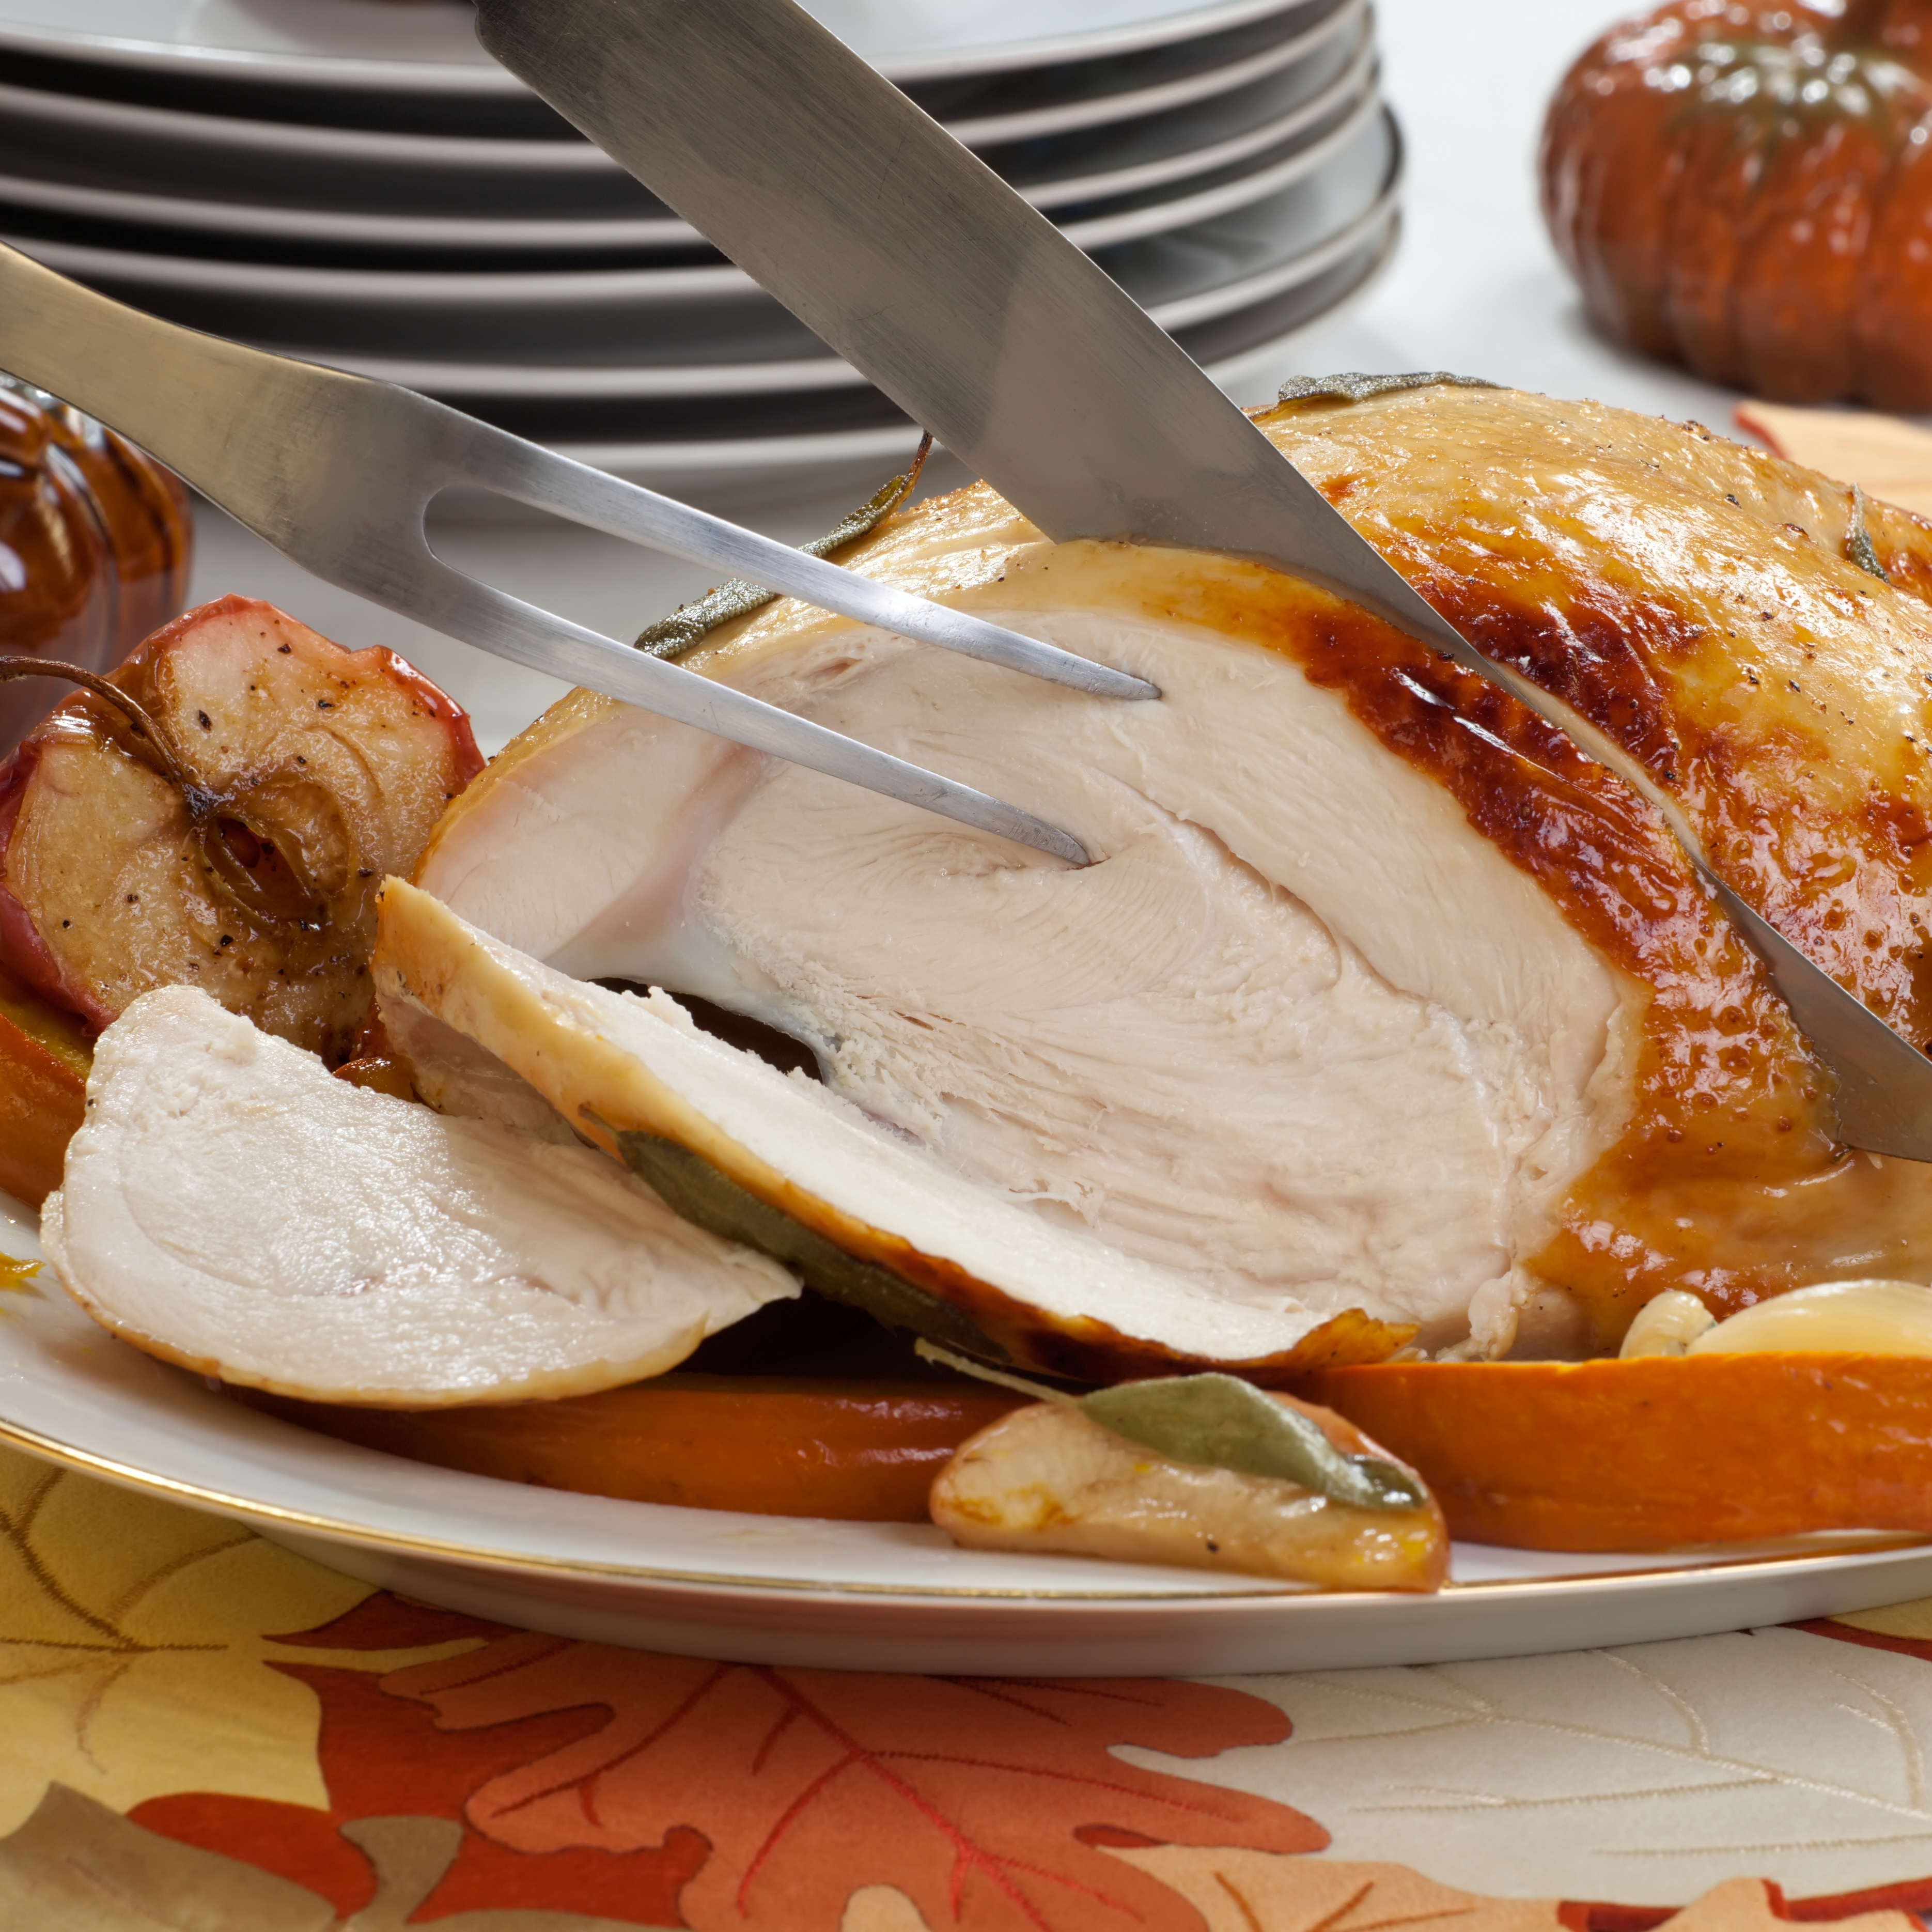 Carving sage - honey butter rub turkey breast garnished with roasted pumpkin and apples in fall themed surrounding